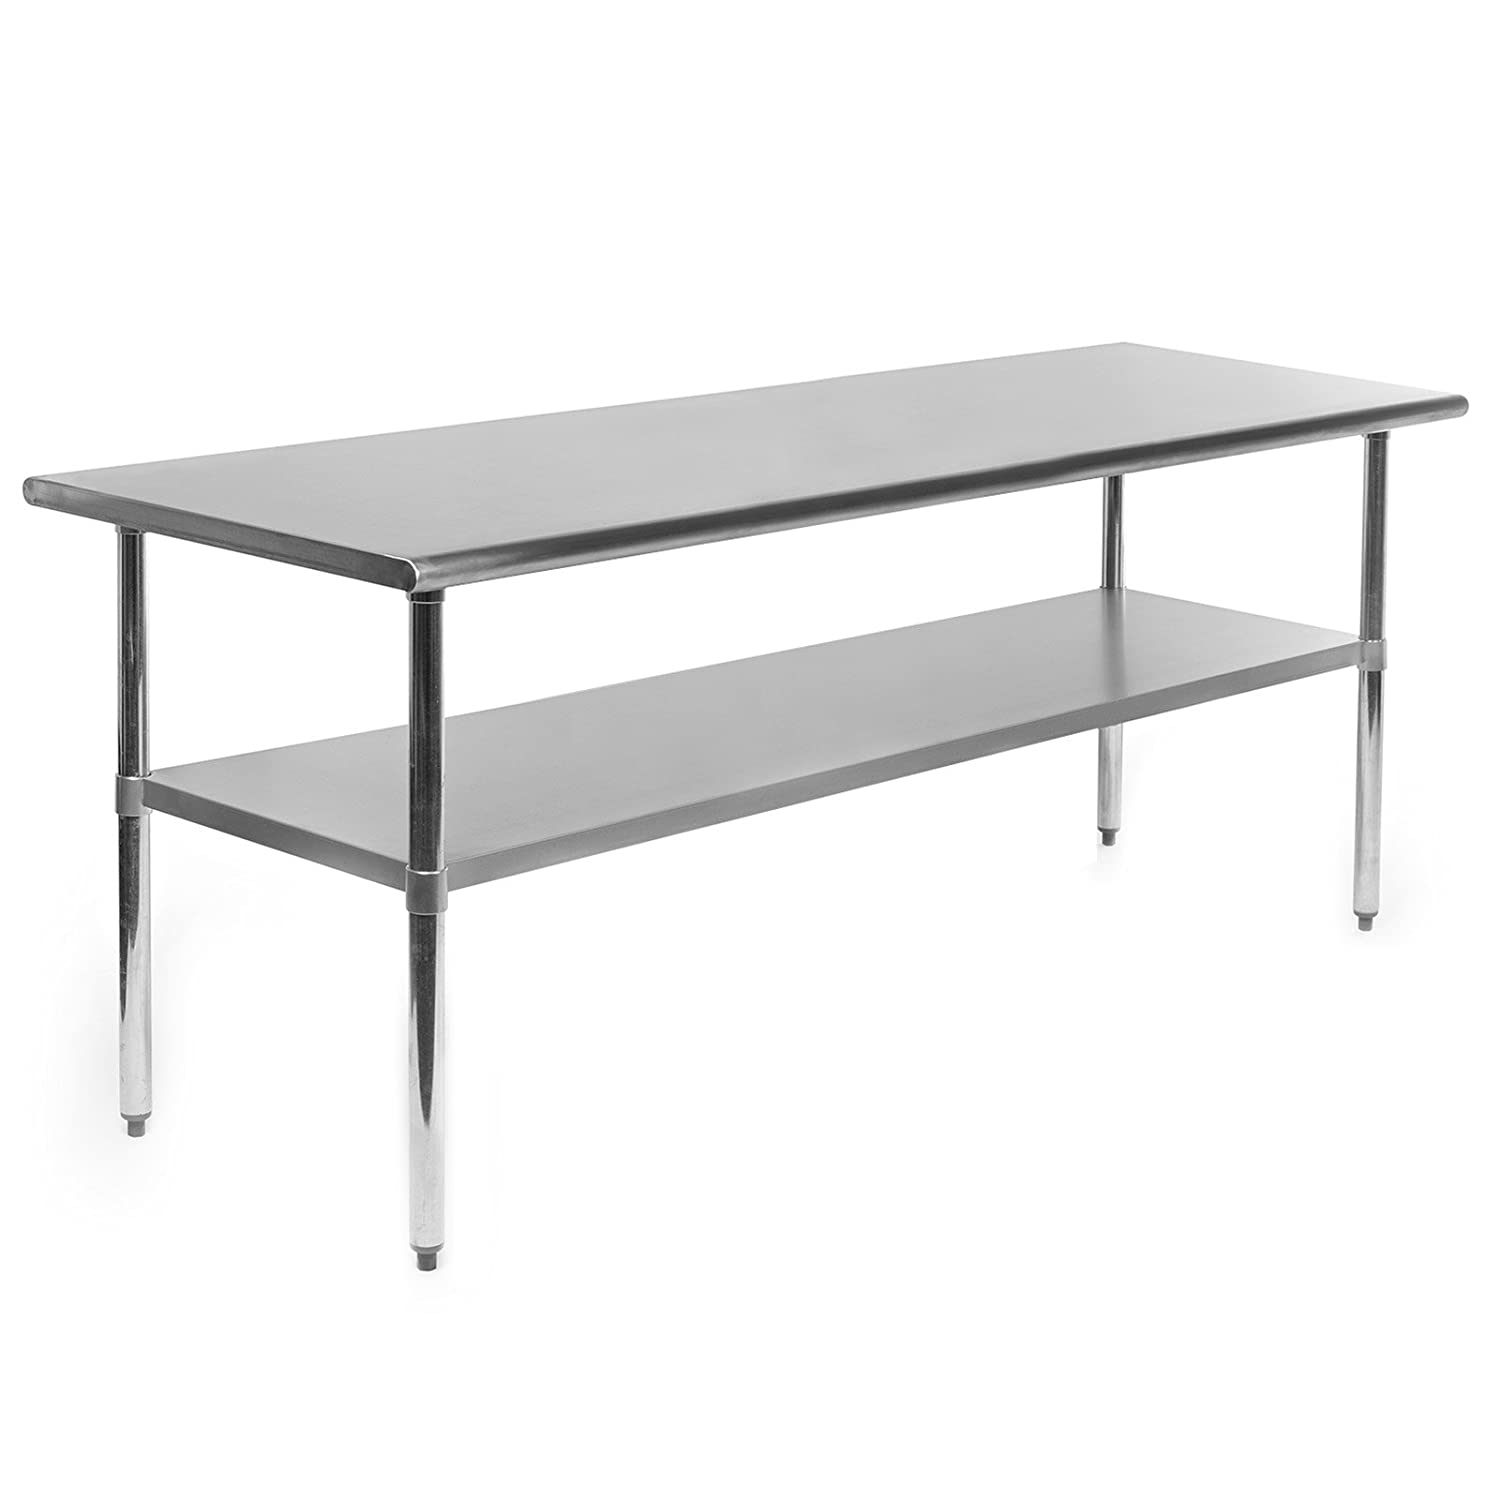 Charming Amazon.com: Gridmann NSF Stainless Steel Commercial Kitchen Prep U0026 Work  Table   60 In. X 30 In.: Industrial U0026 Scientific